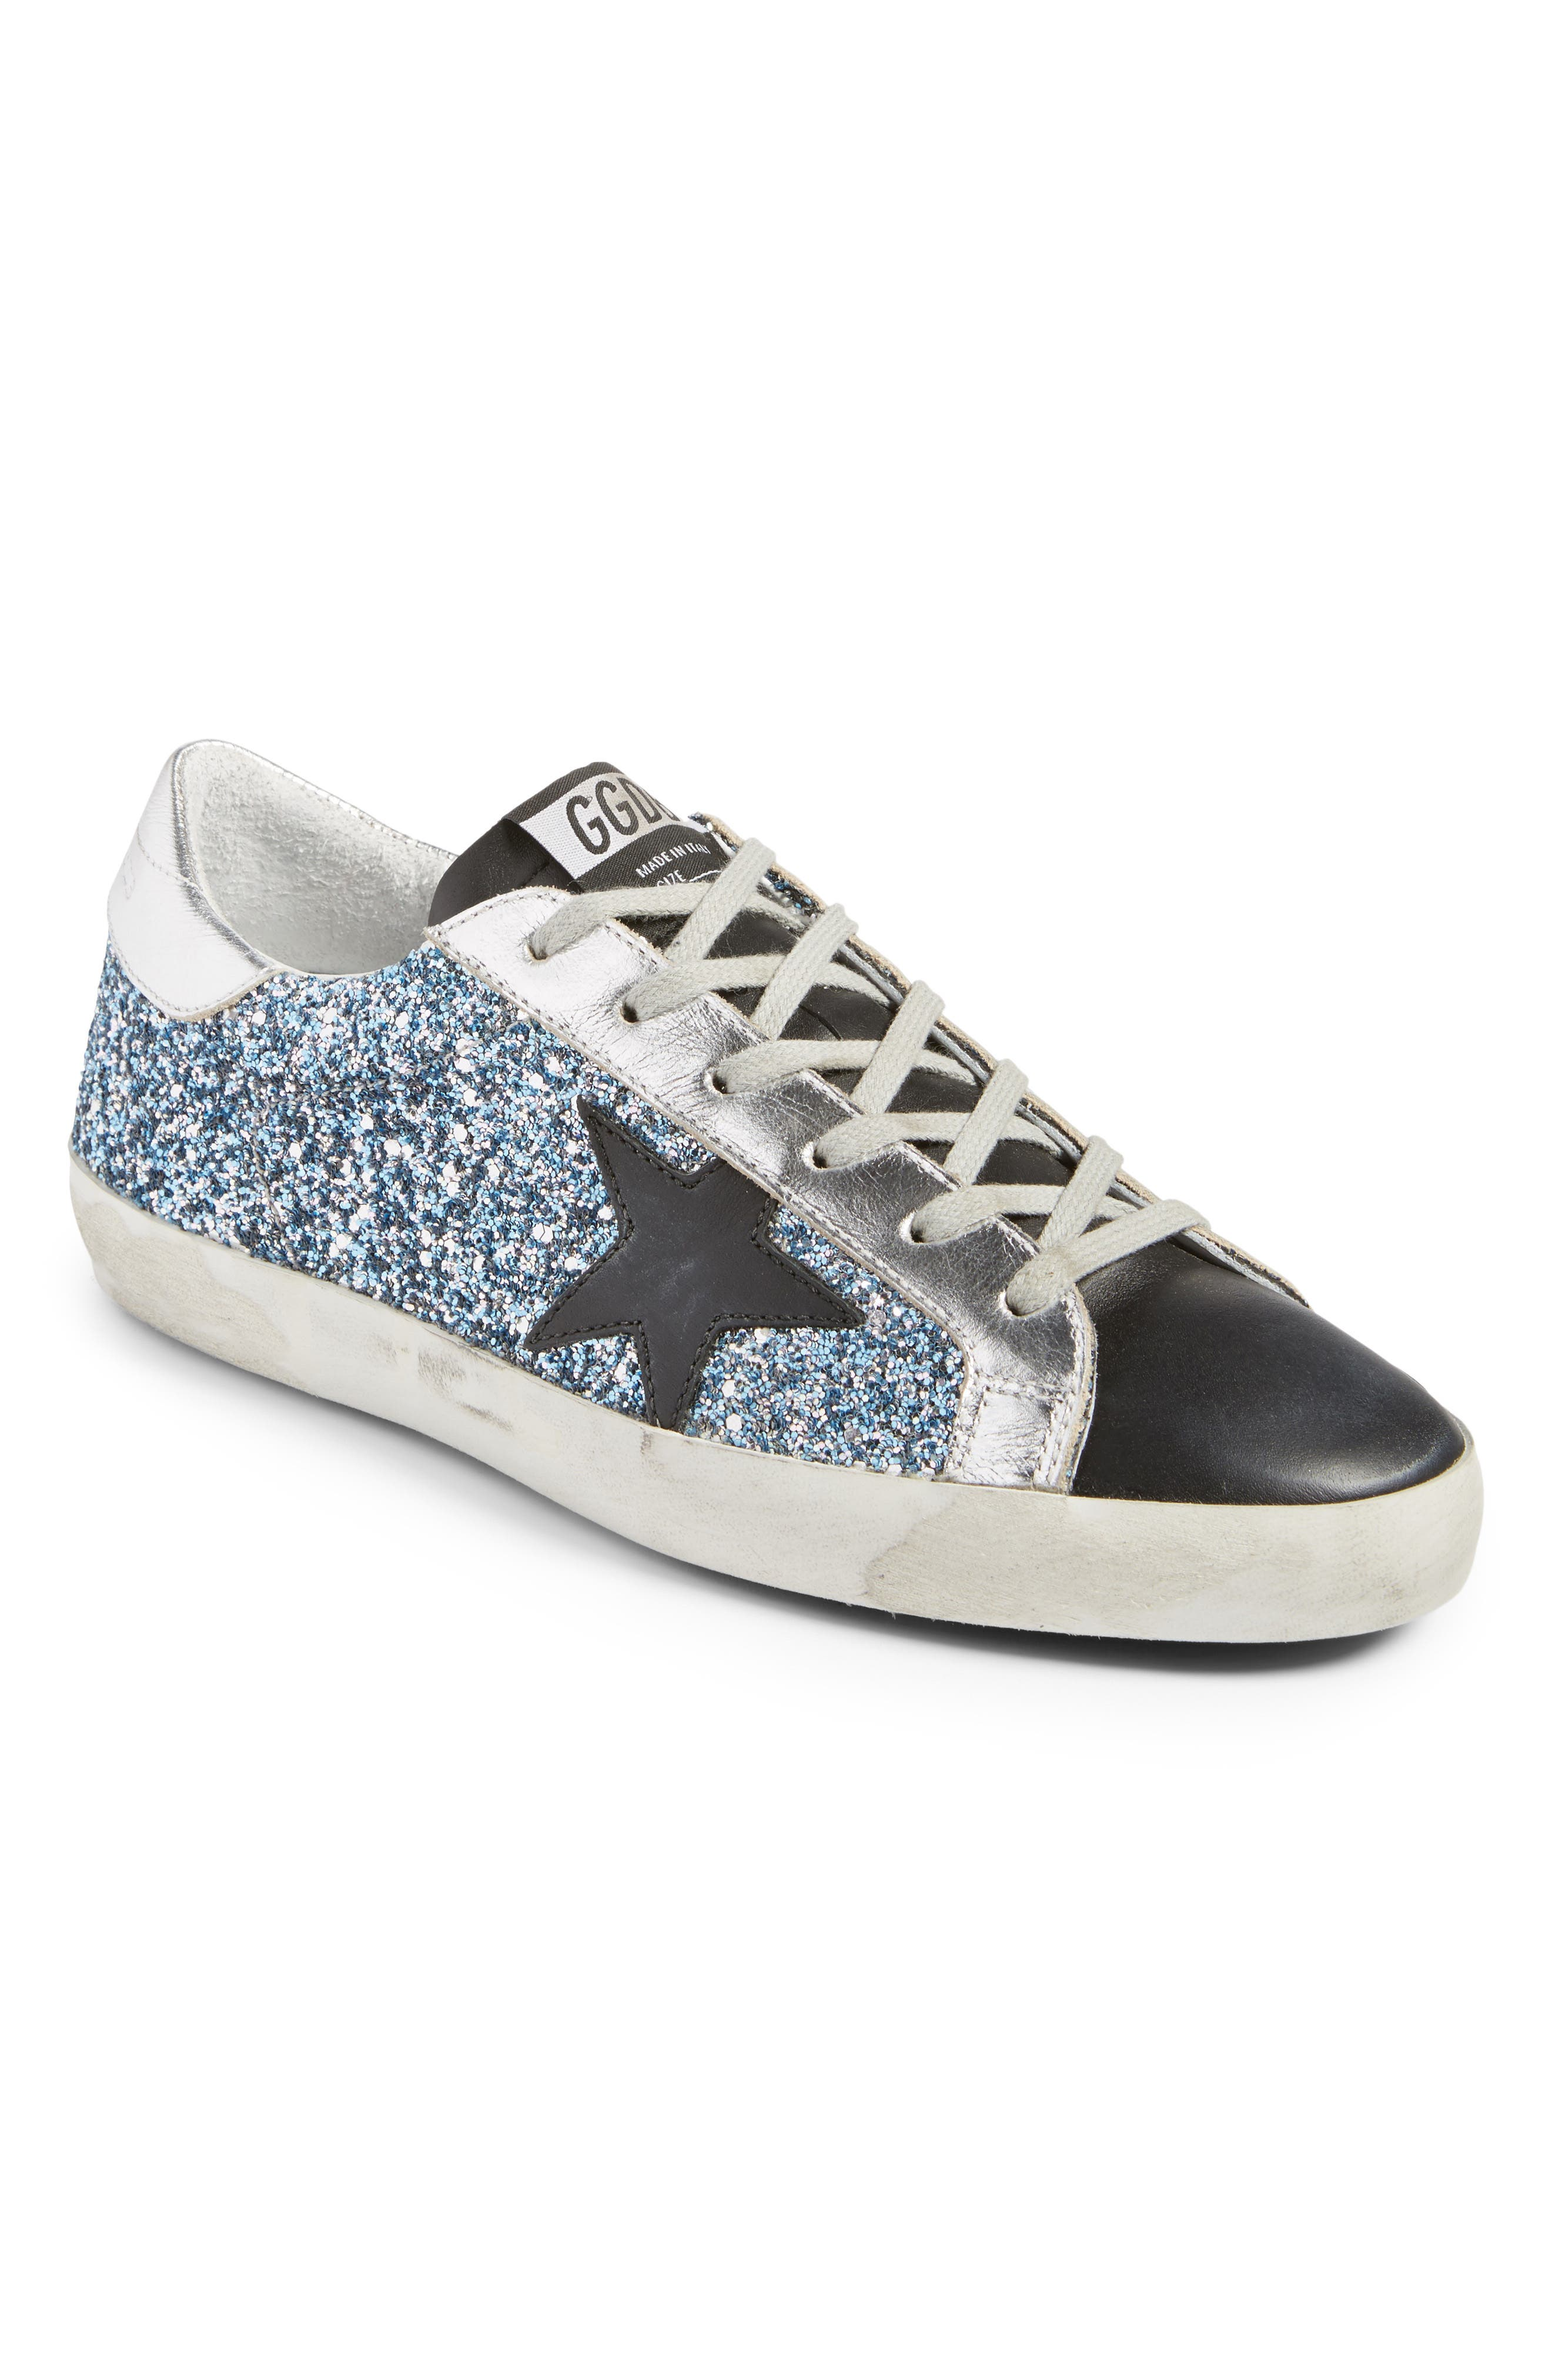 Superstar Glitter Sneaker,                         Main,                         color, Blue Glitter